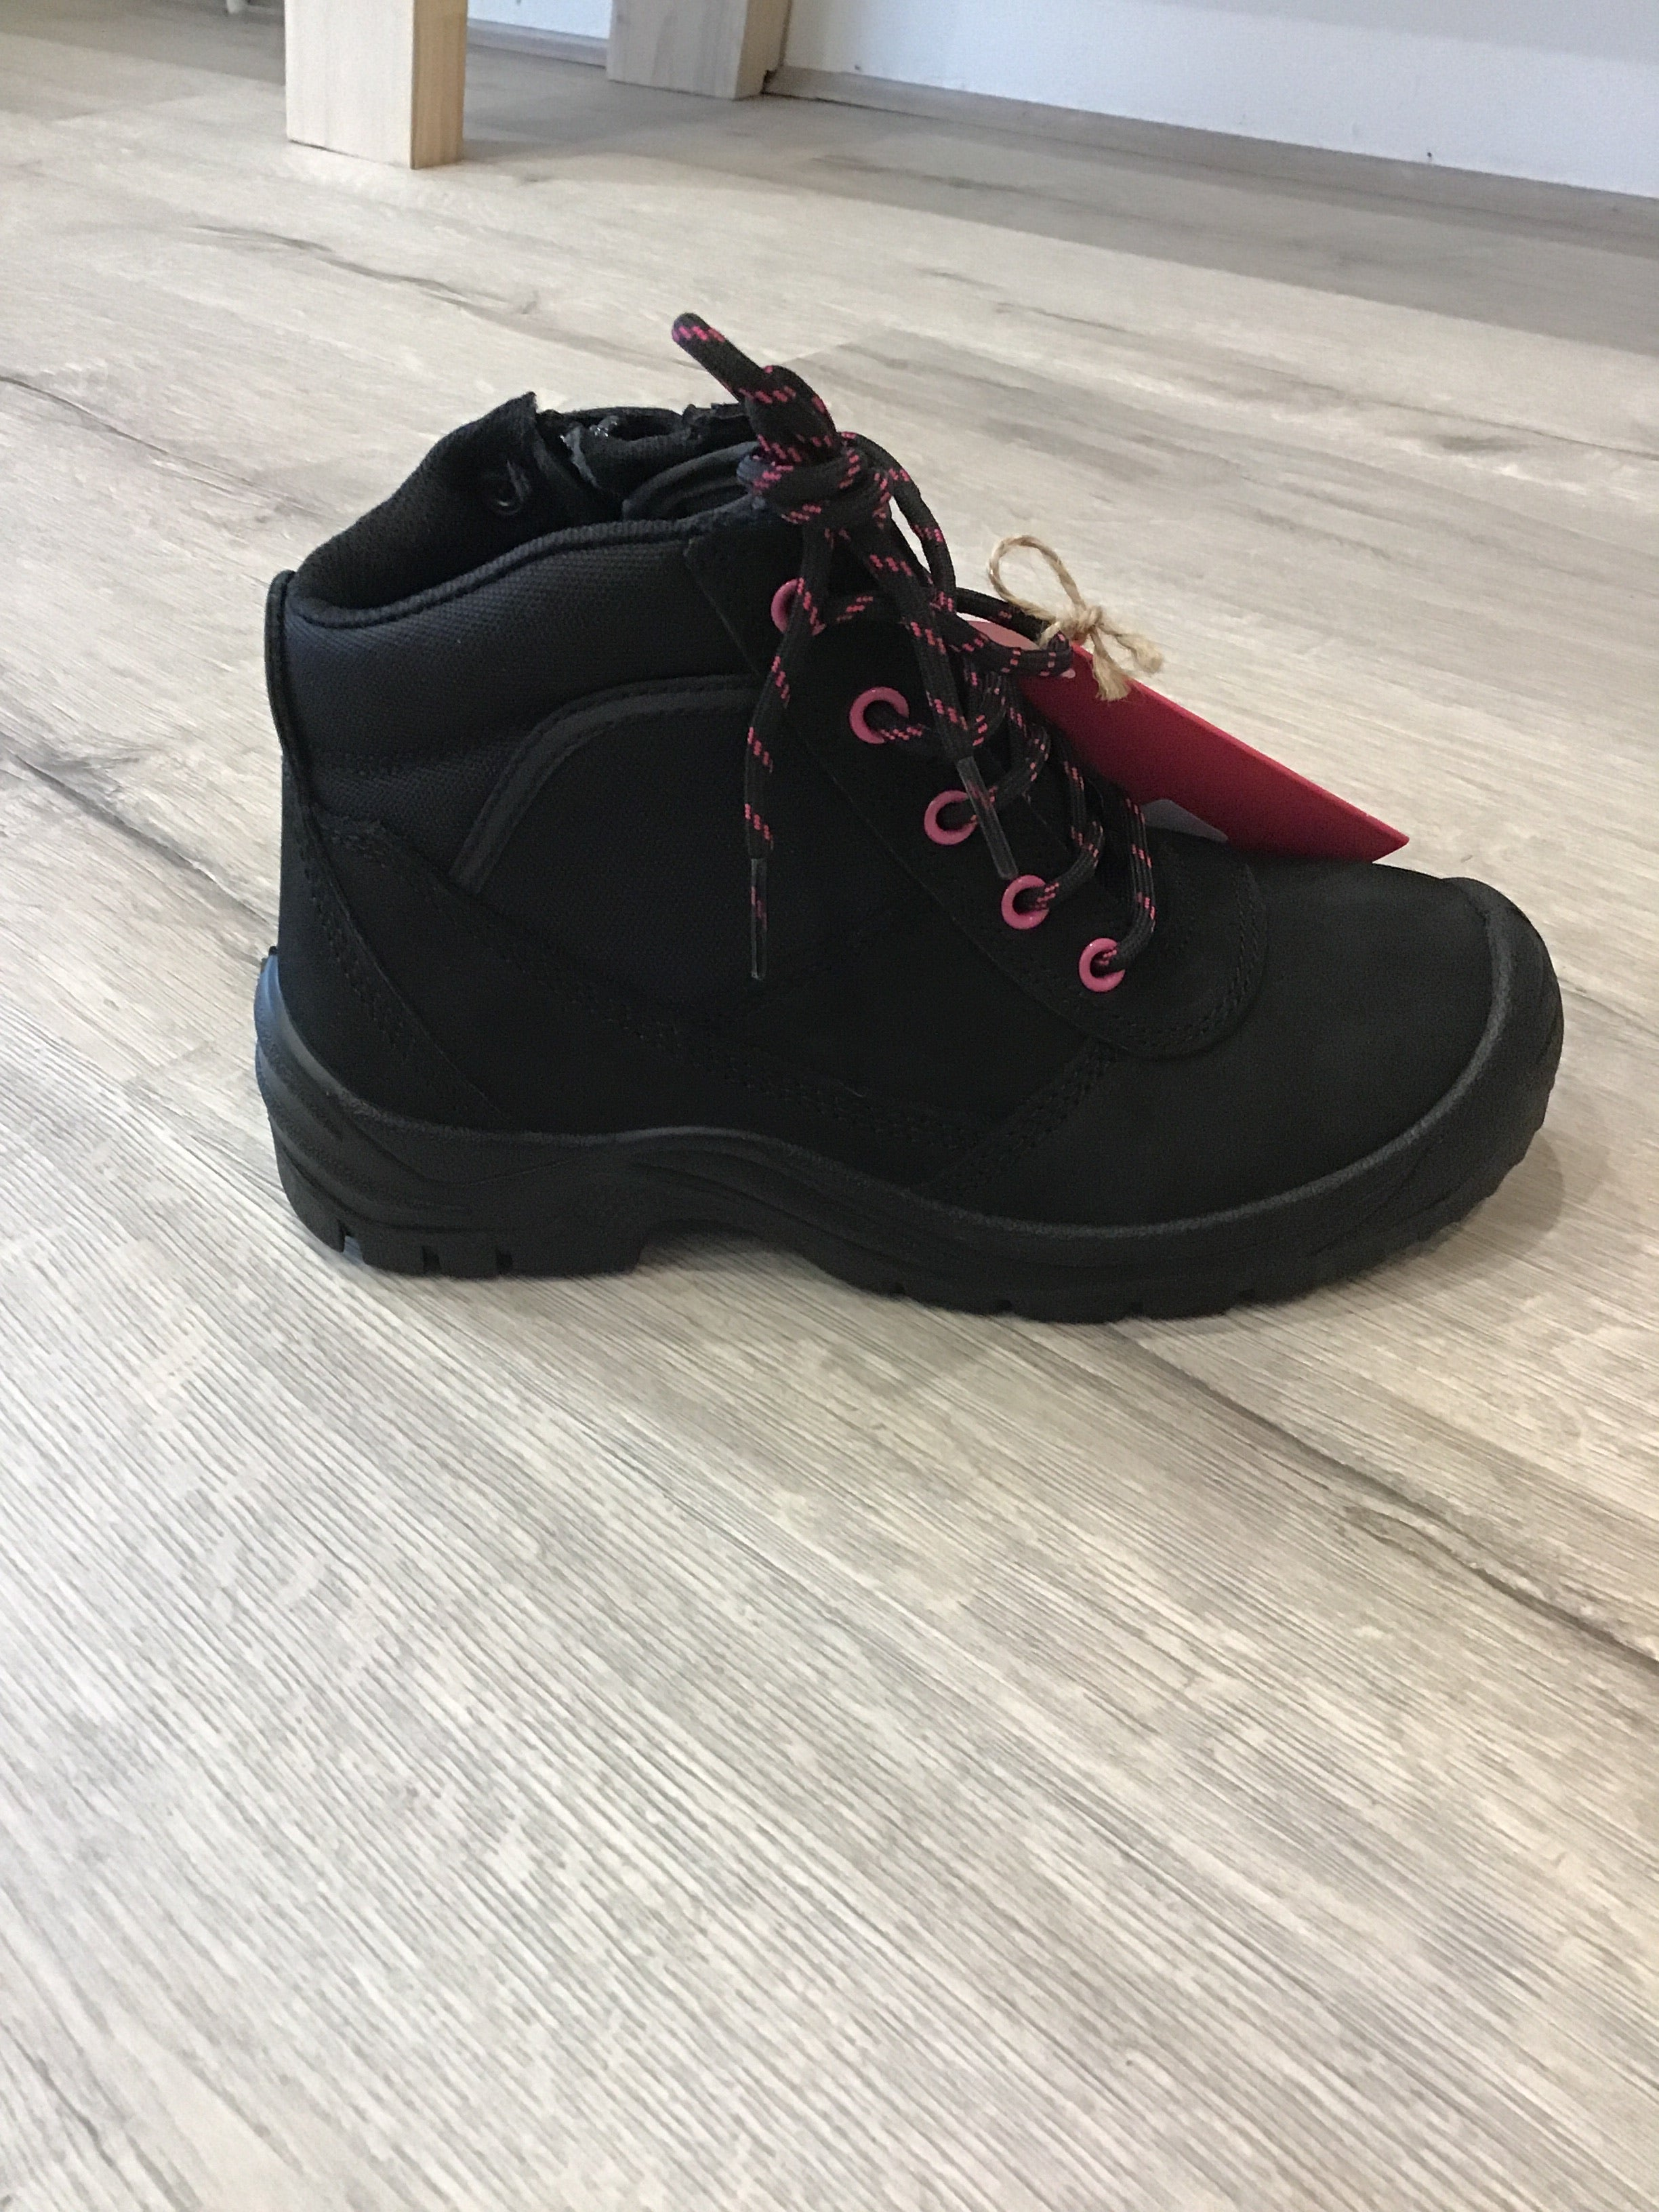 Best Ever Boots - Buster Black with Pink eyelets - Steel toe